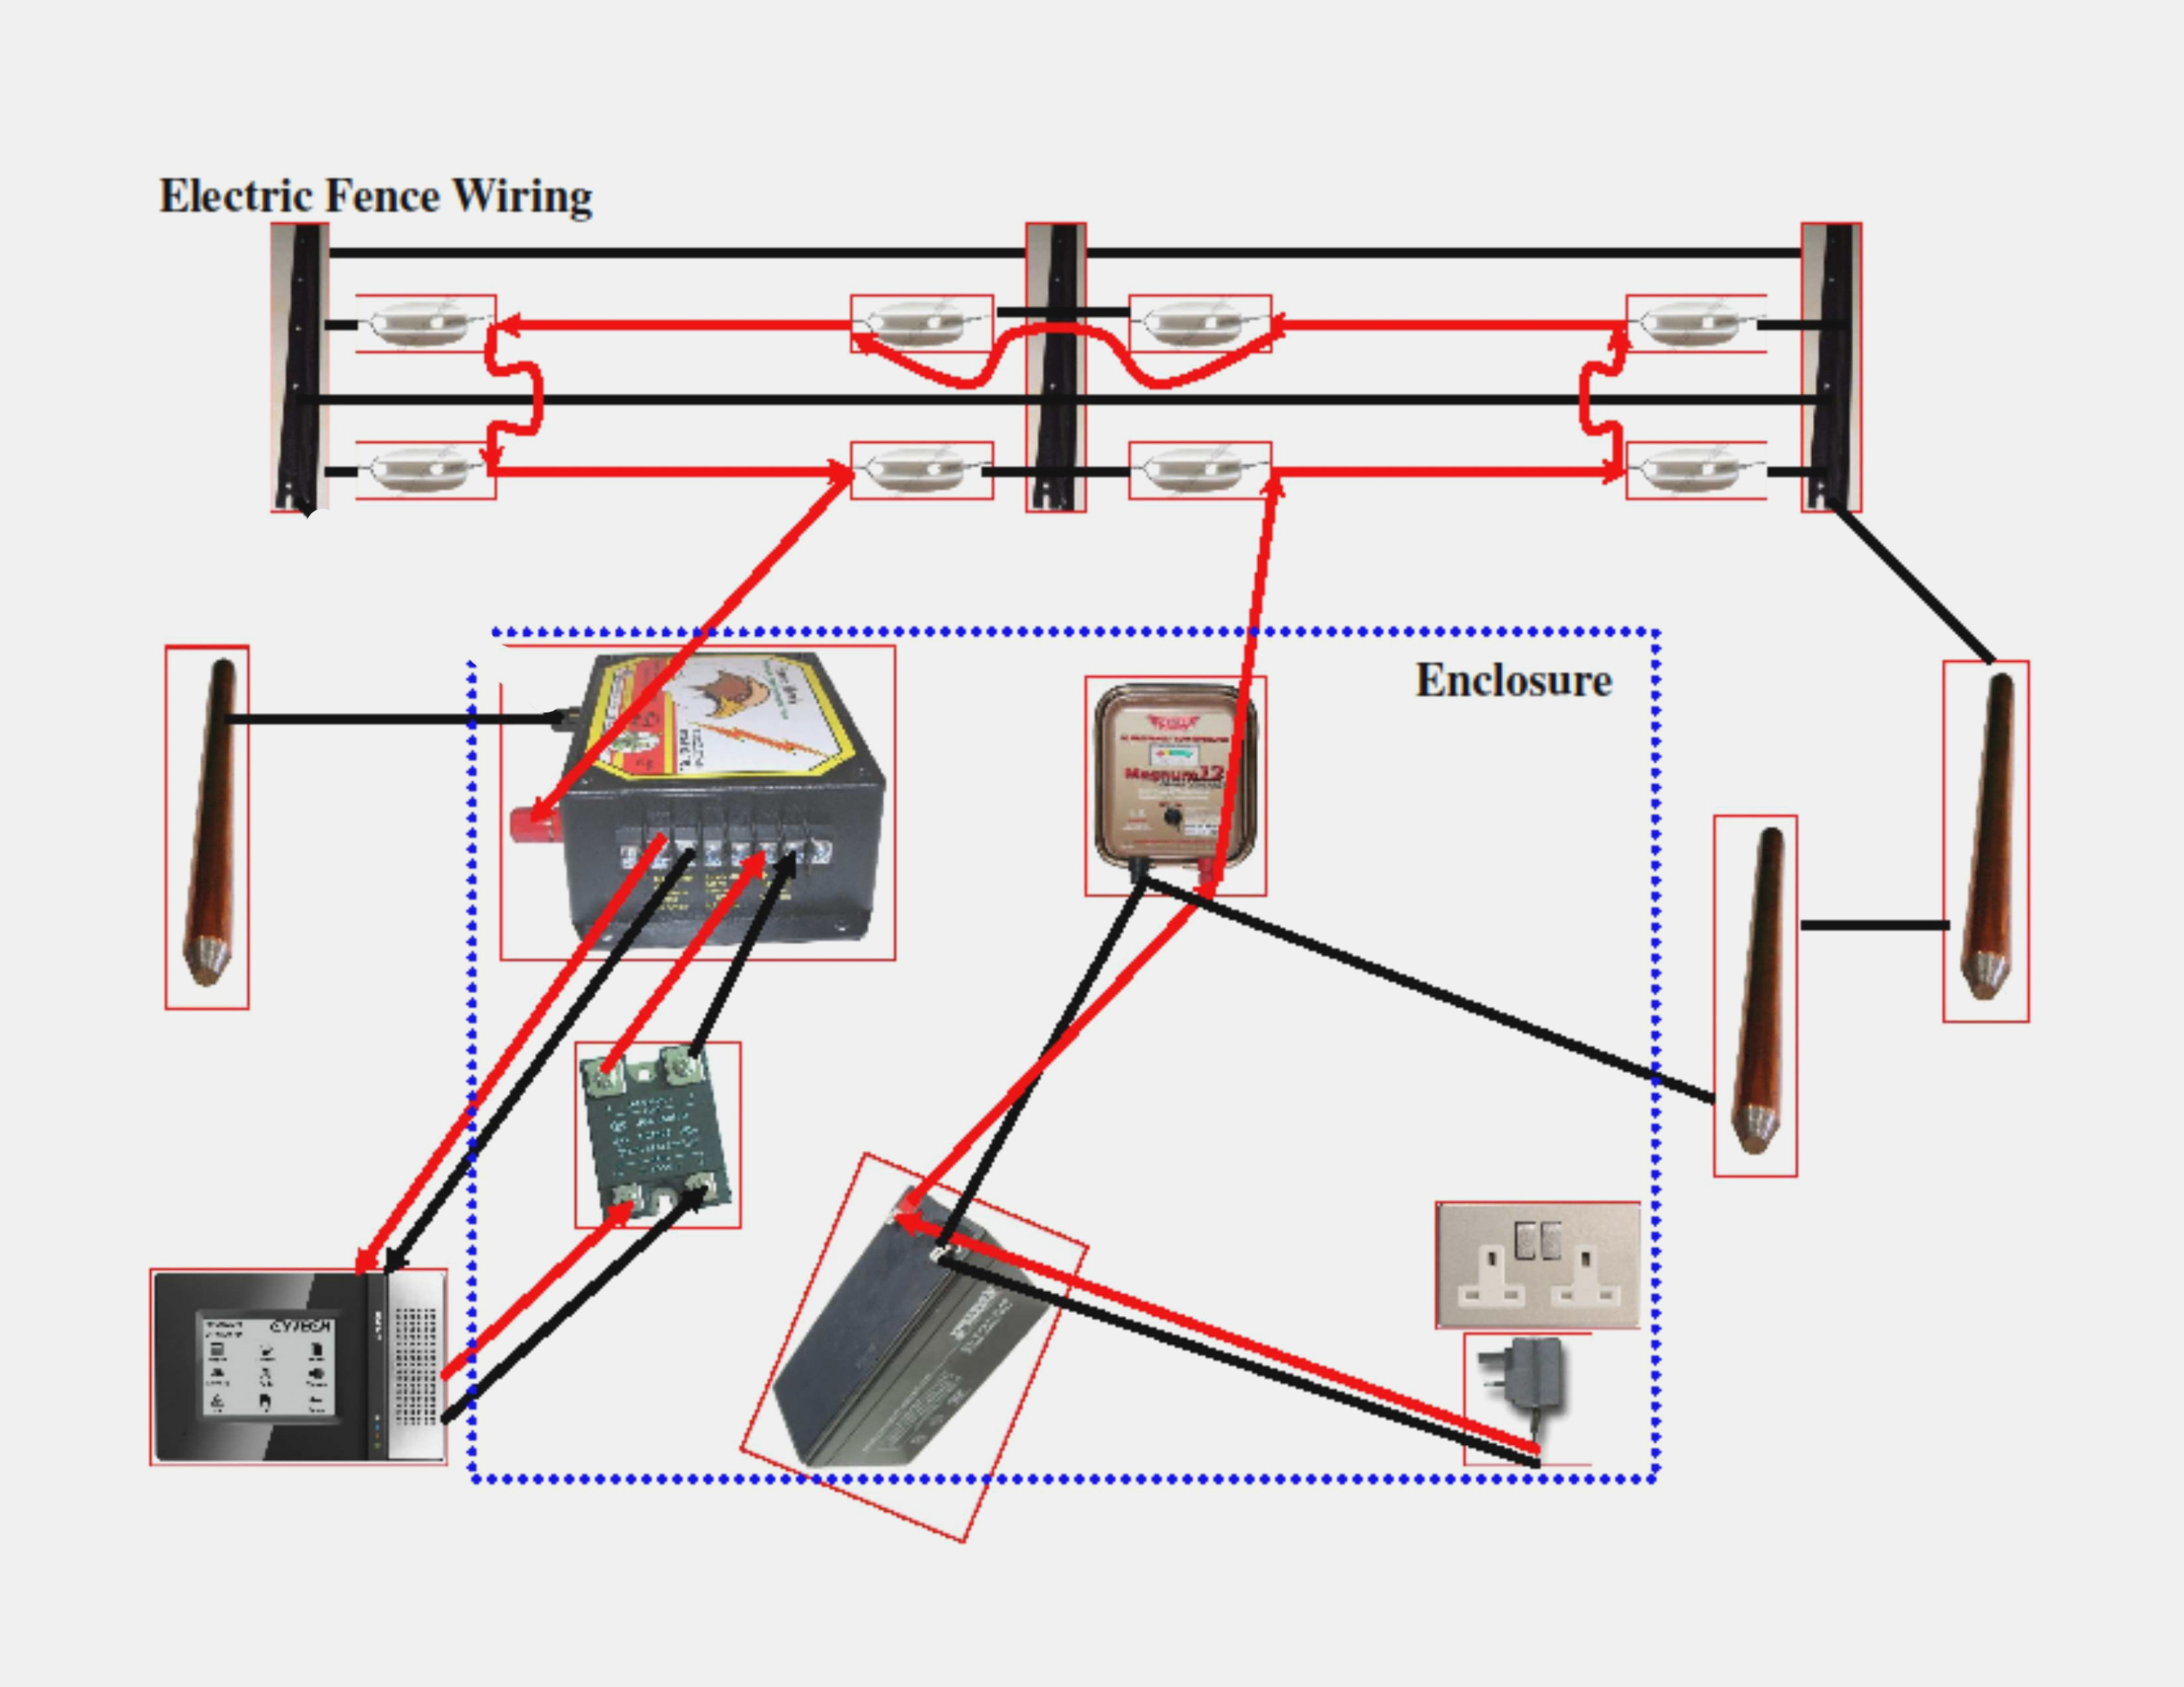 Electric Fence Wire Diagram | Wiring Diagram - Electric Fence Wiring Diagram